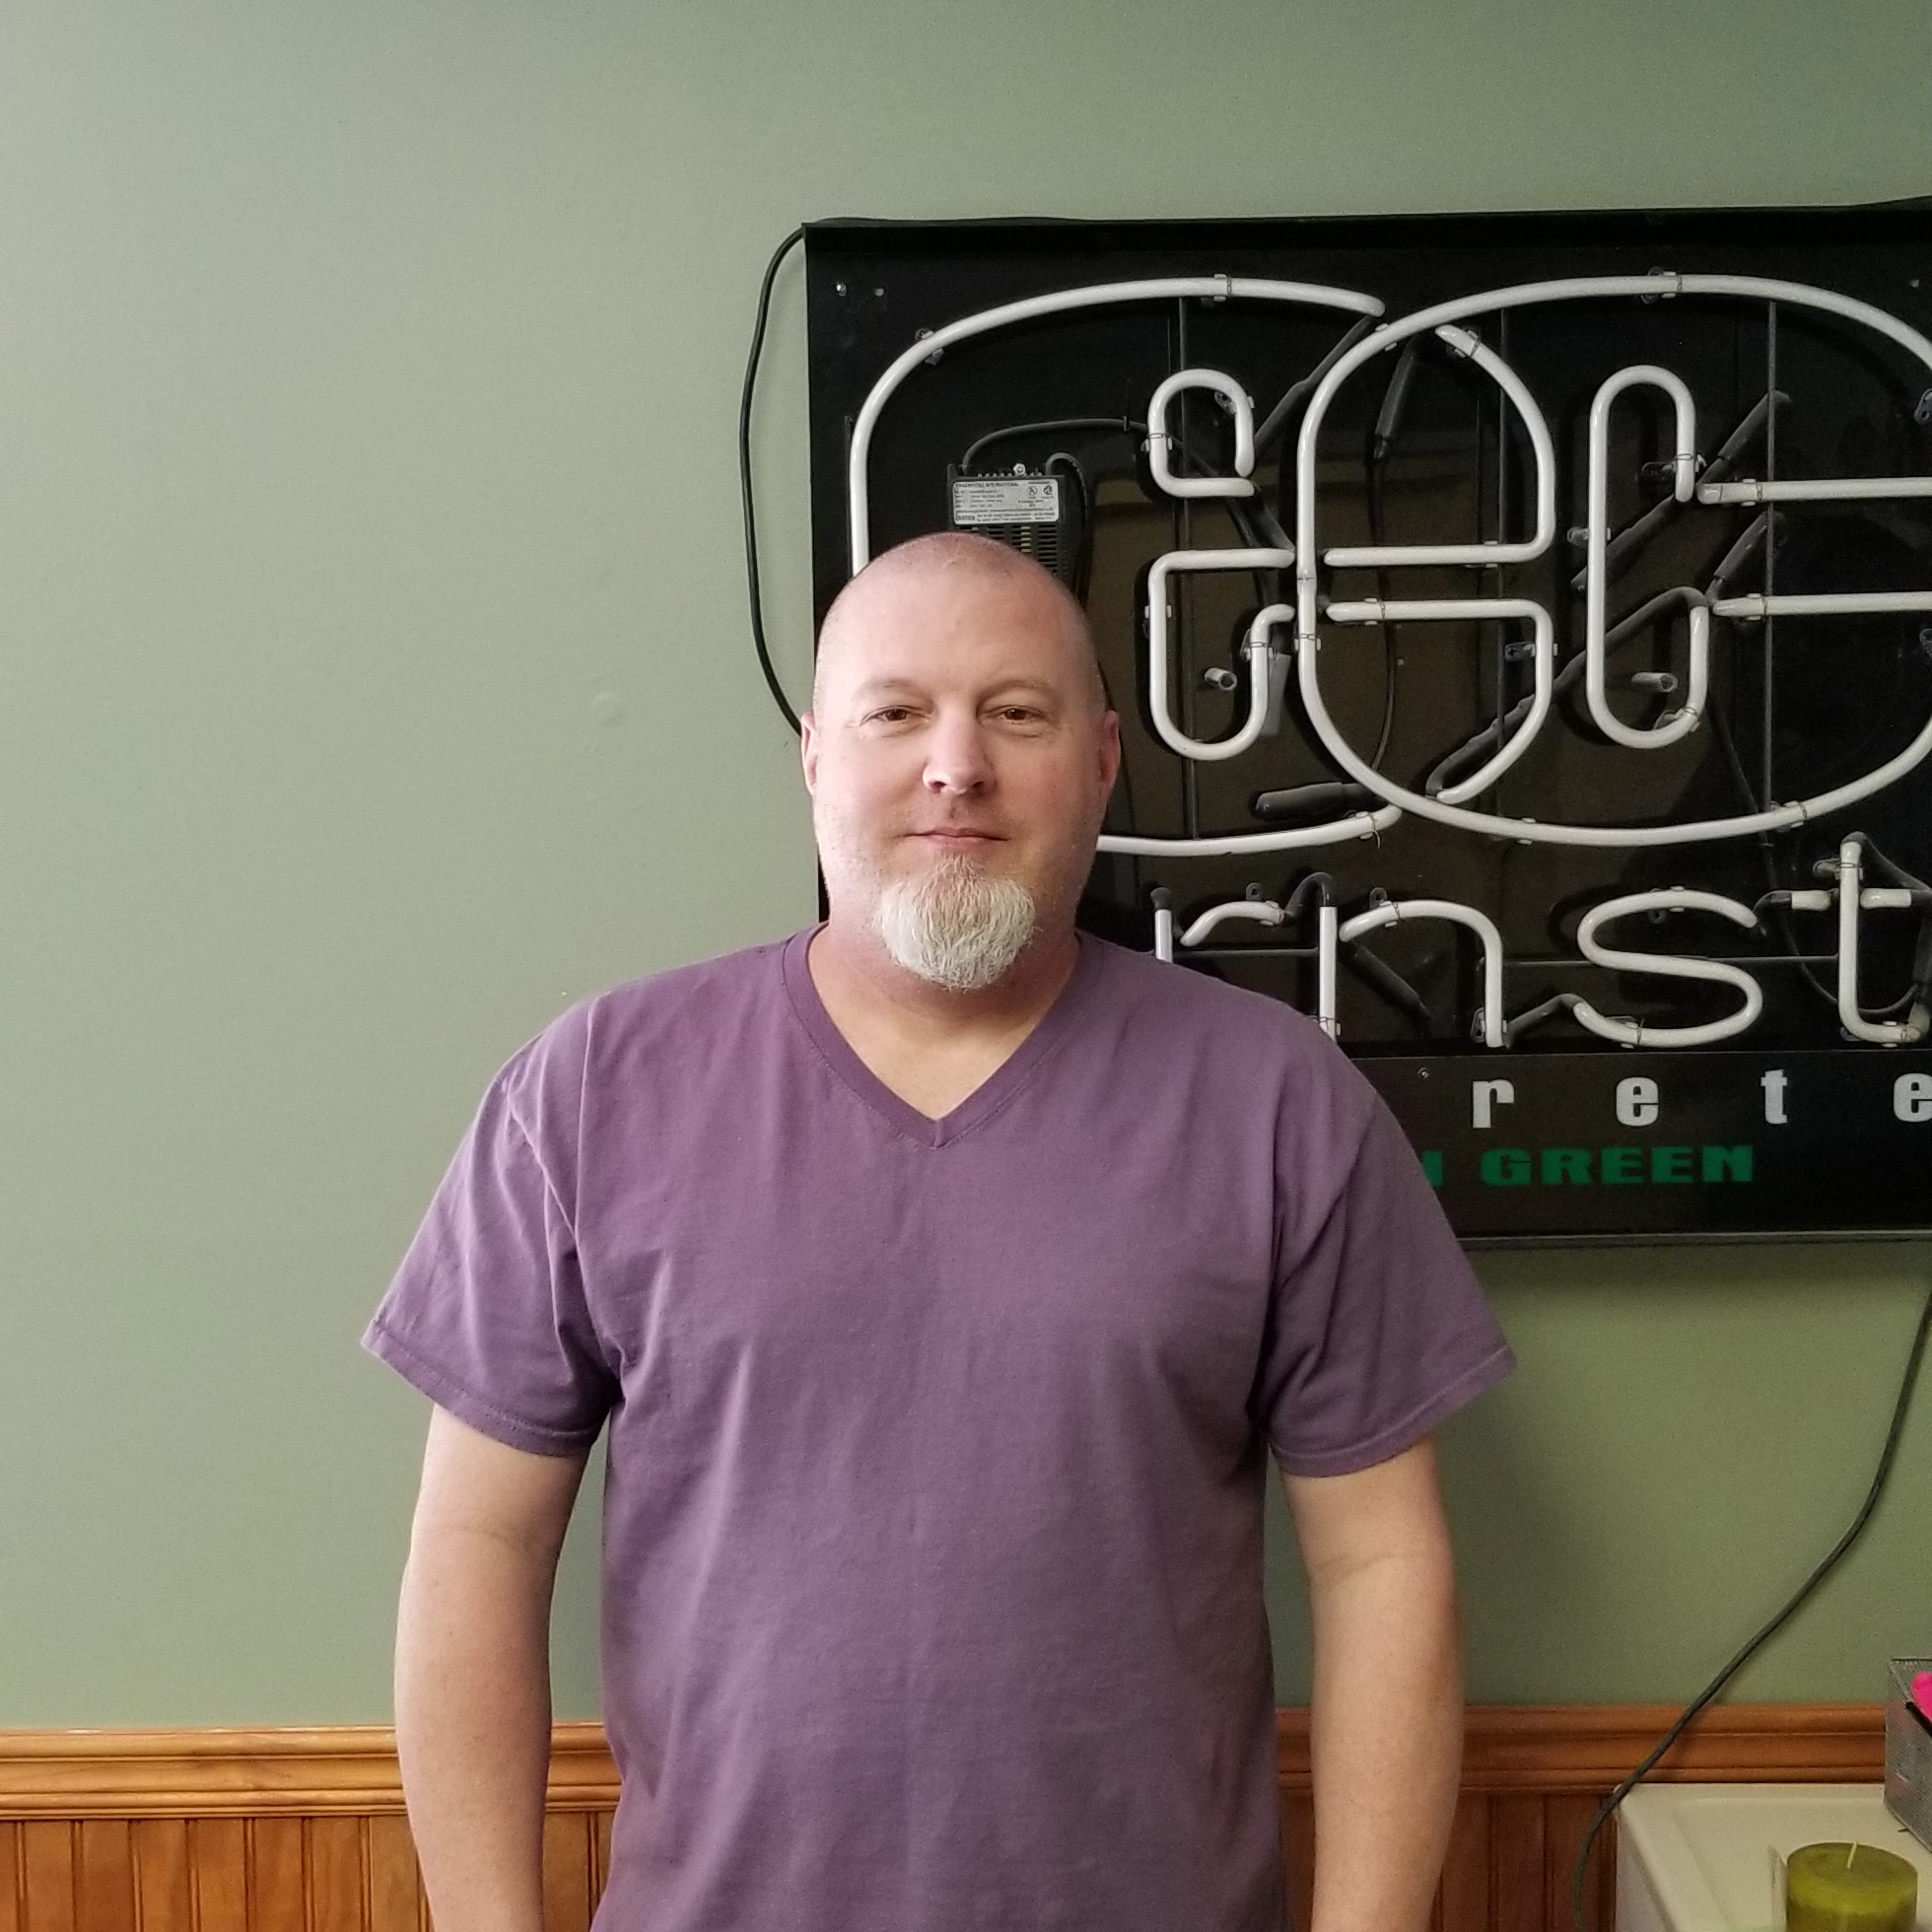 Kennesaw Picture Robert Word Dispatcher